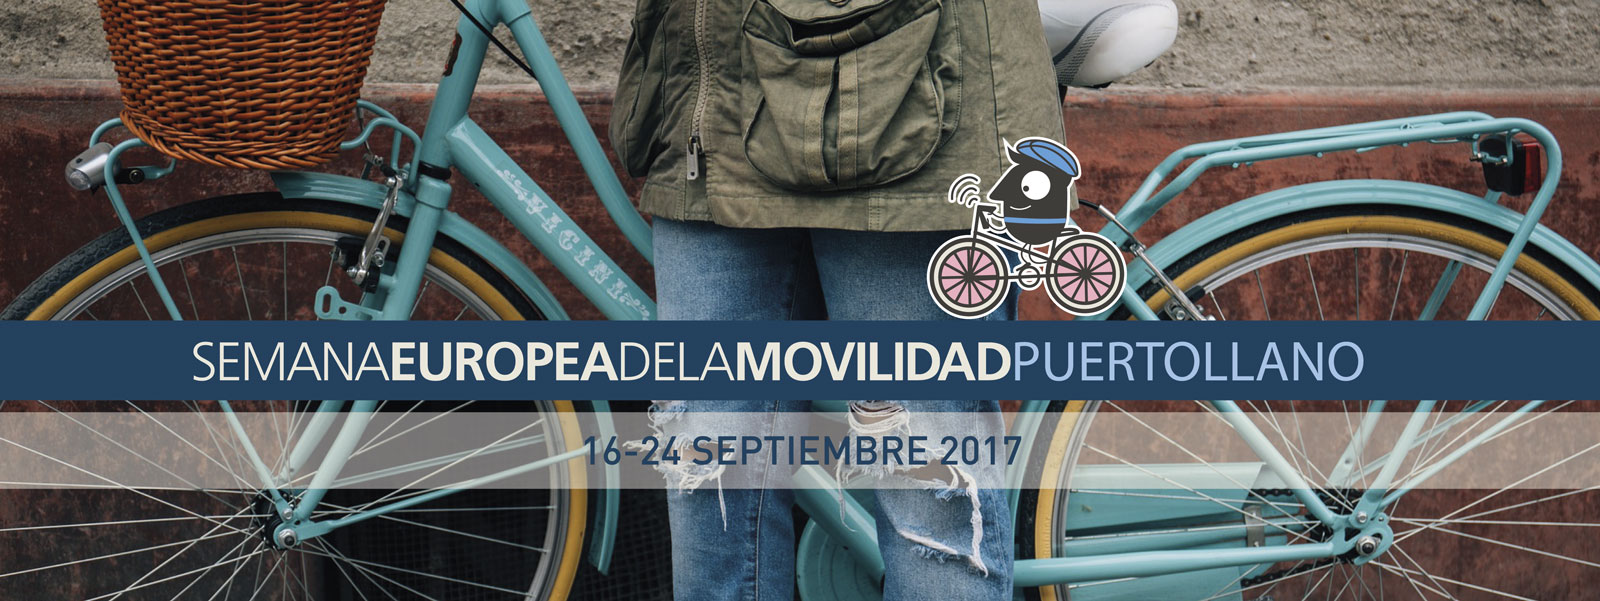 frontal bicicleta Semana Europea de la Movilidad 2017